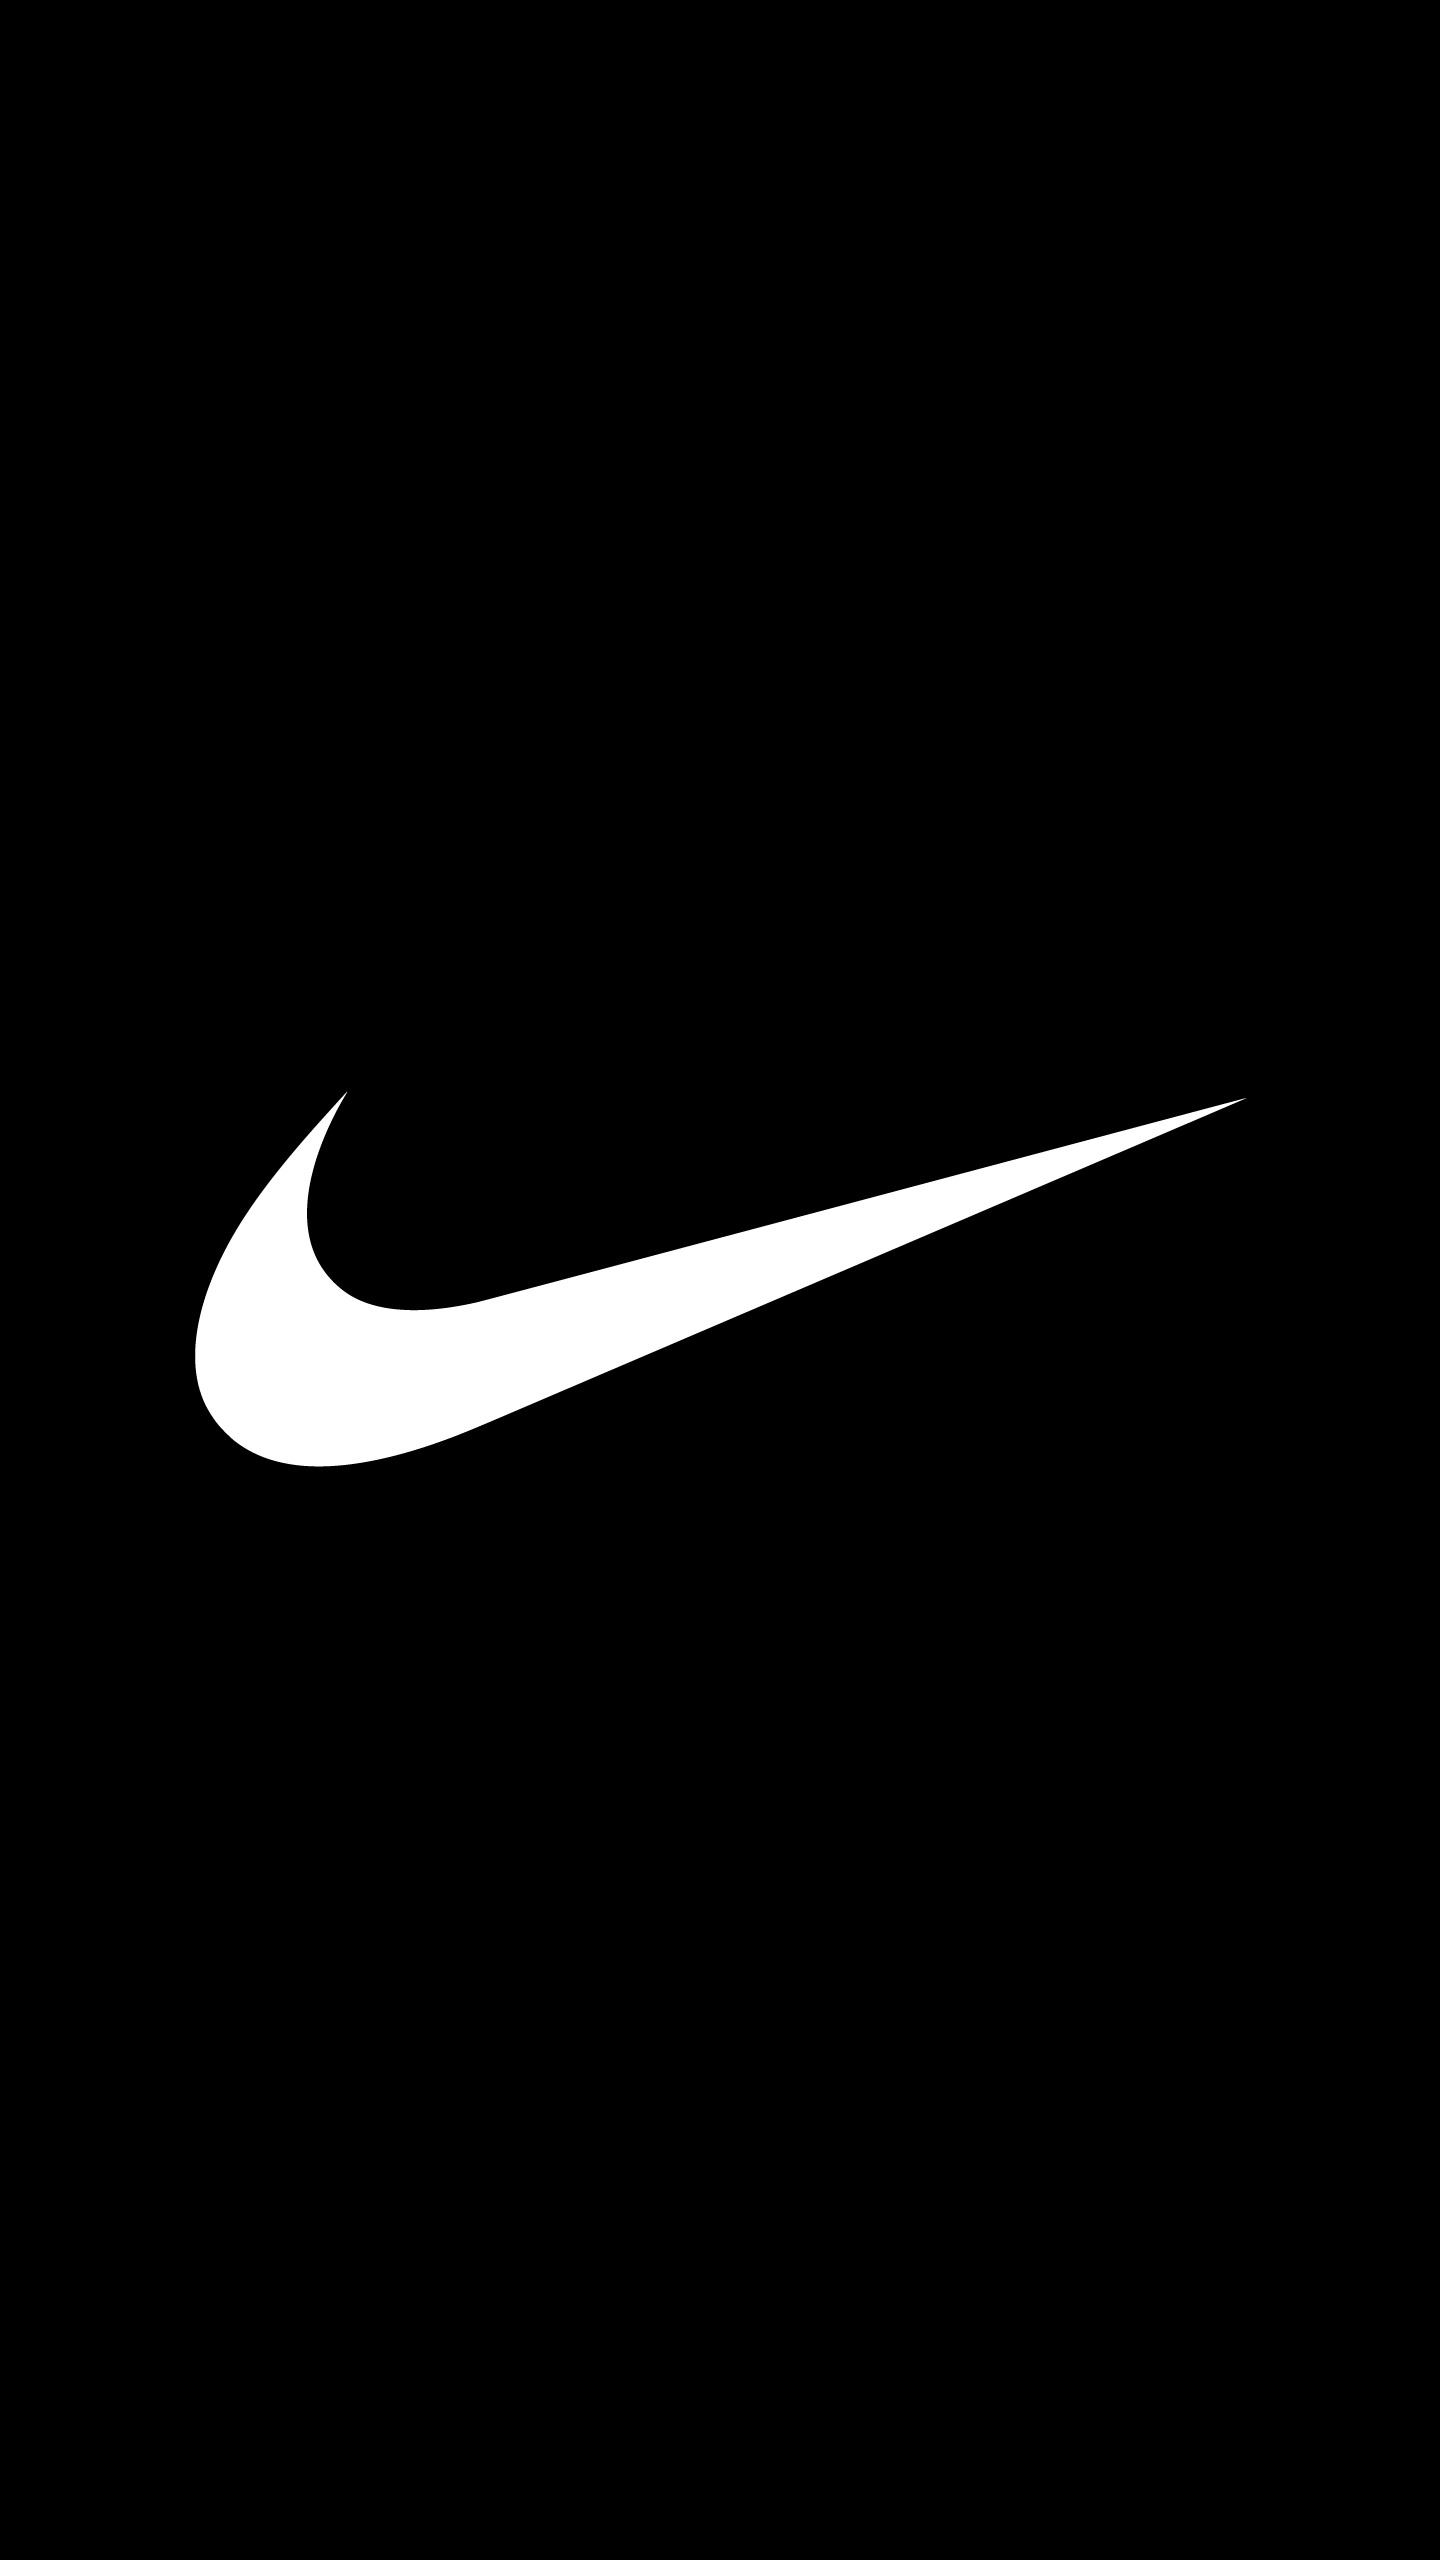 Nike Amoled Wallpapers Wallpaper Cave